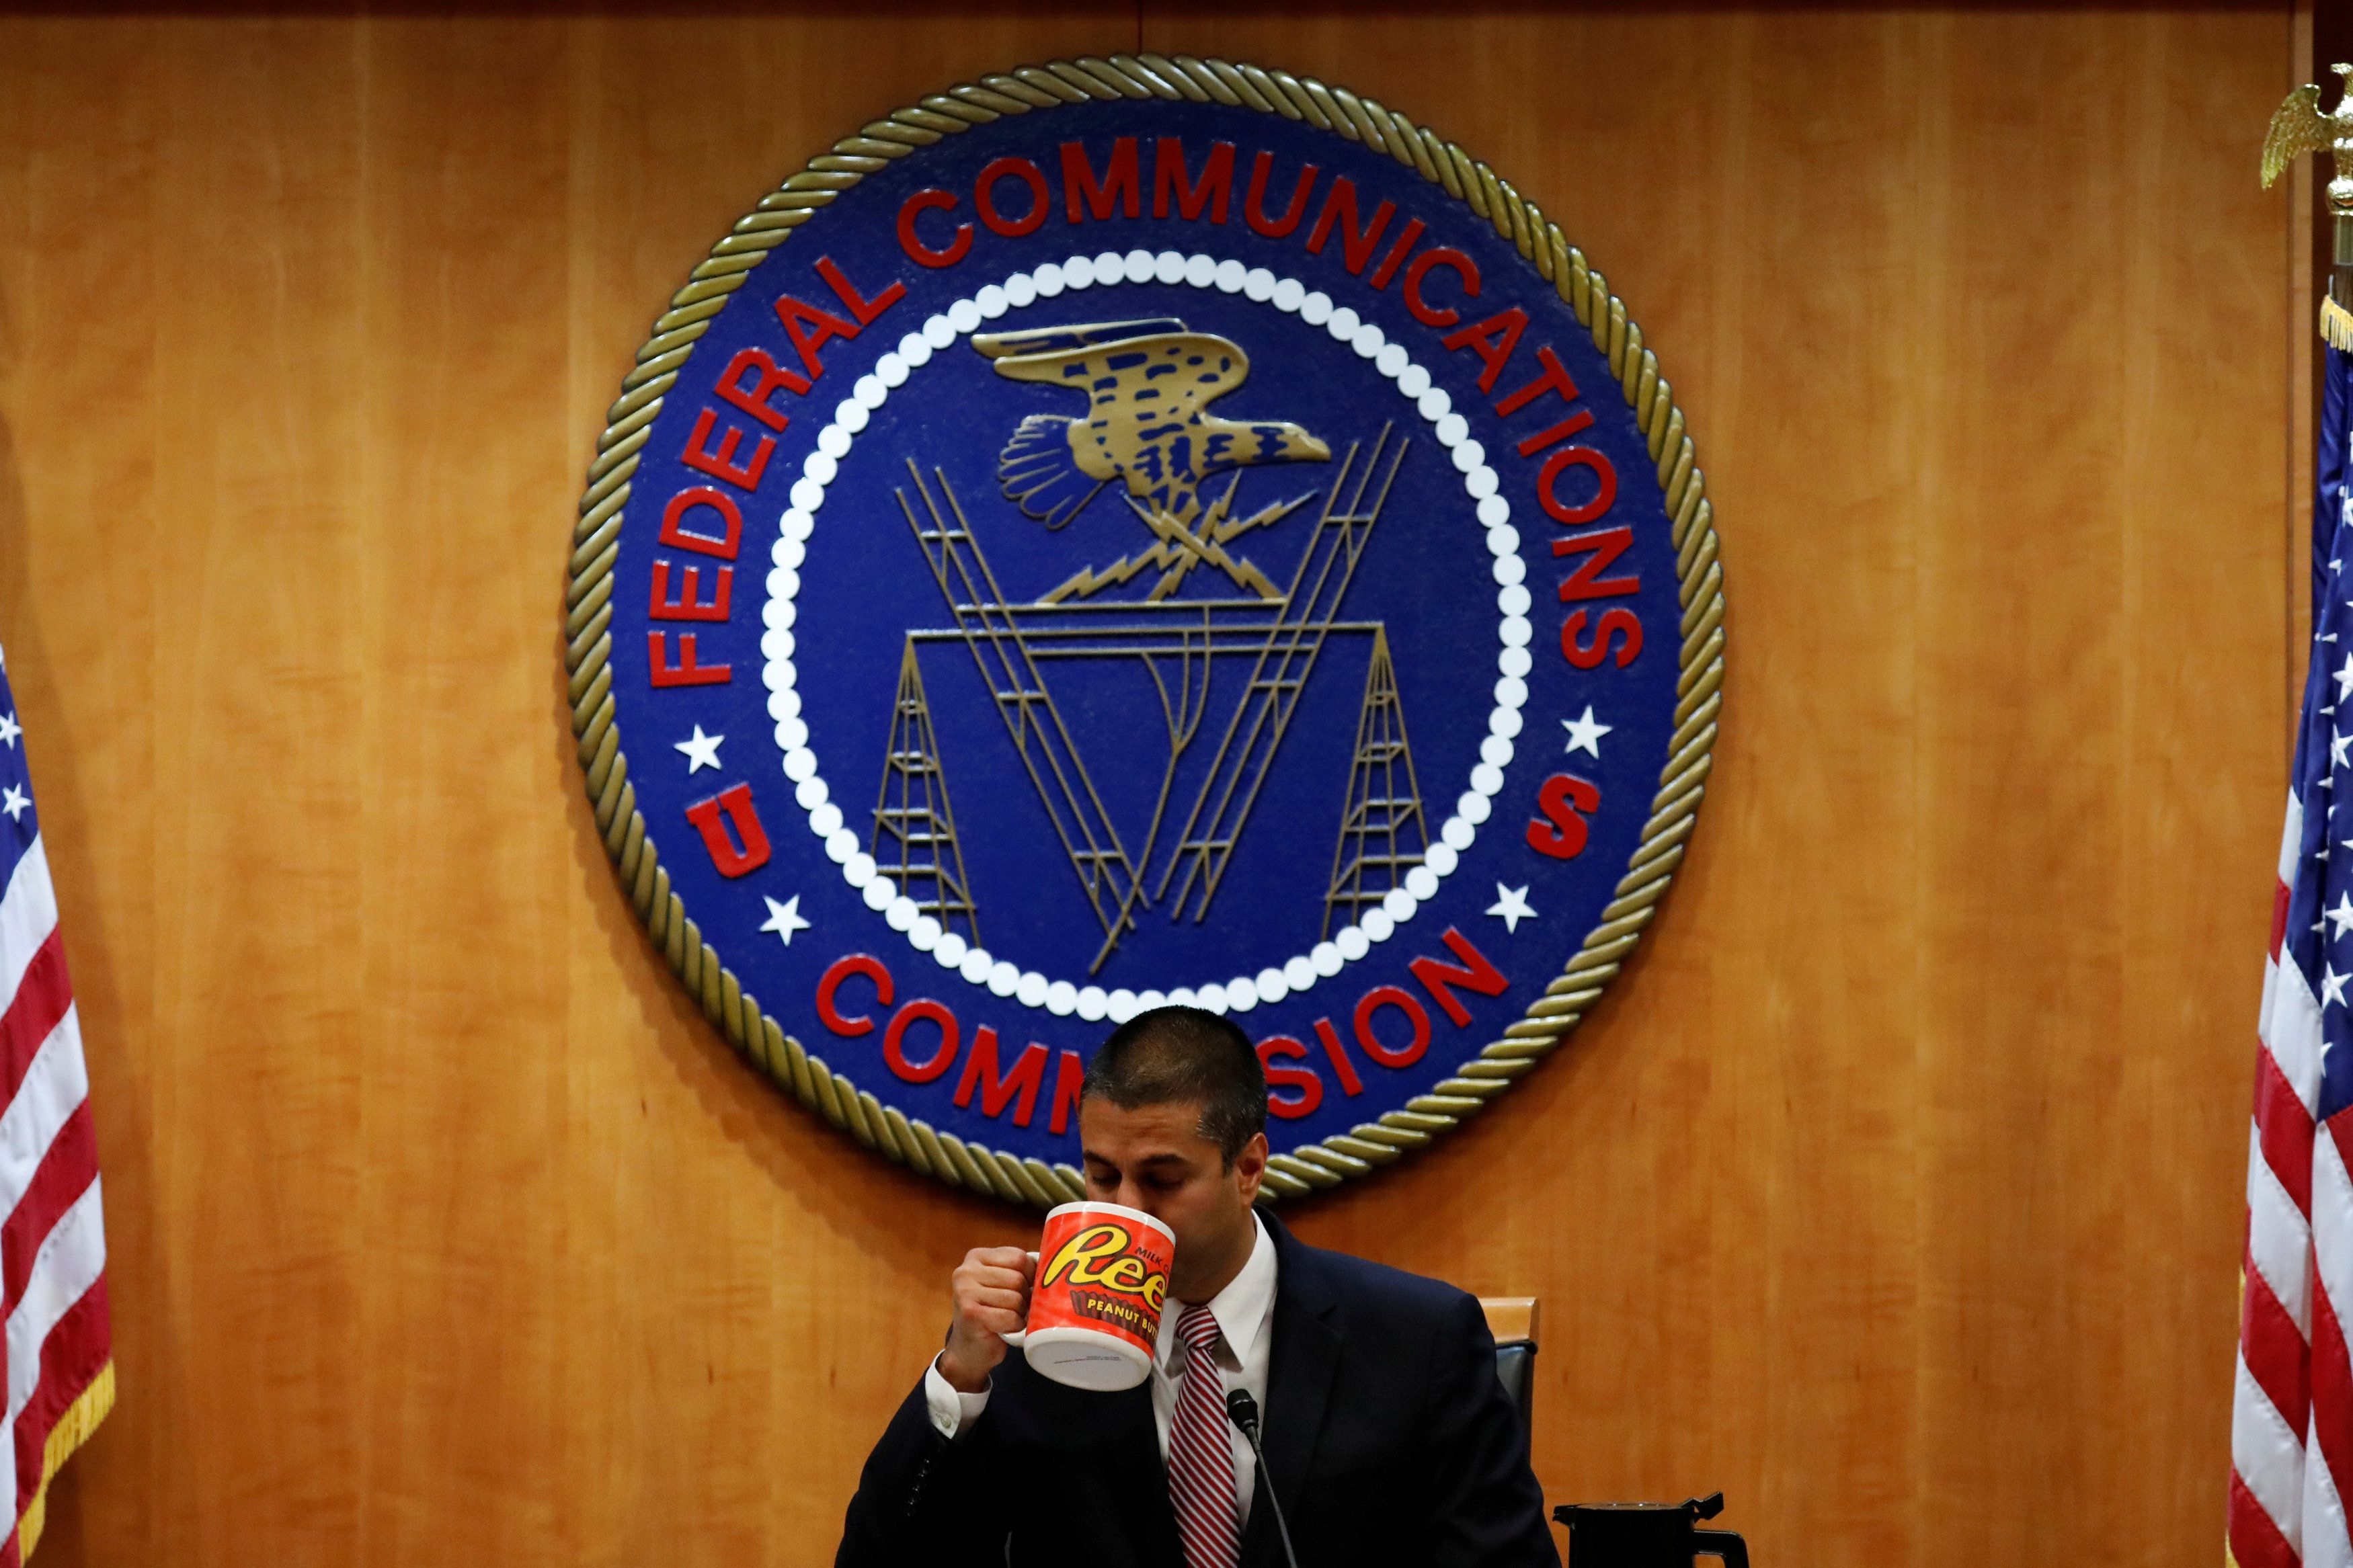 Chairman Ajit Paid drinks coffee ahead of the vote on the repeal of so called net neutrality rules at the Federal Communications Commission in Washington, U.S., December 14, 2017. REUTERS/Aaron P. Bernstein